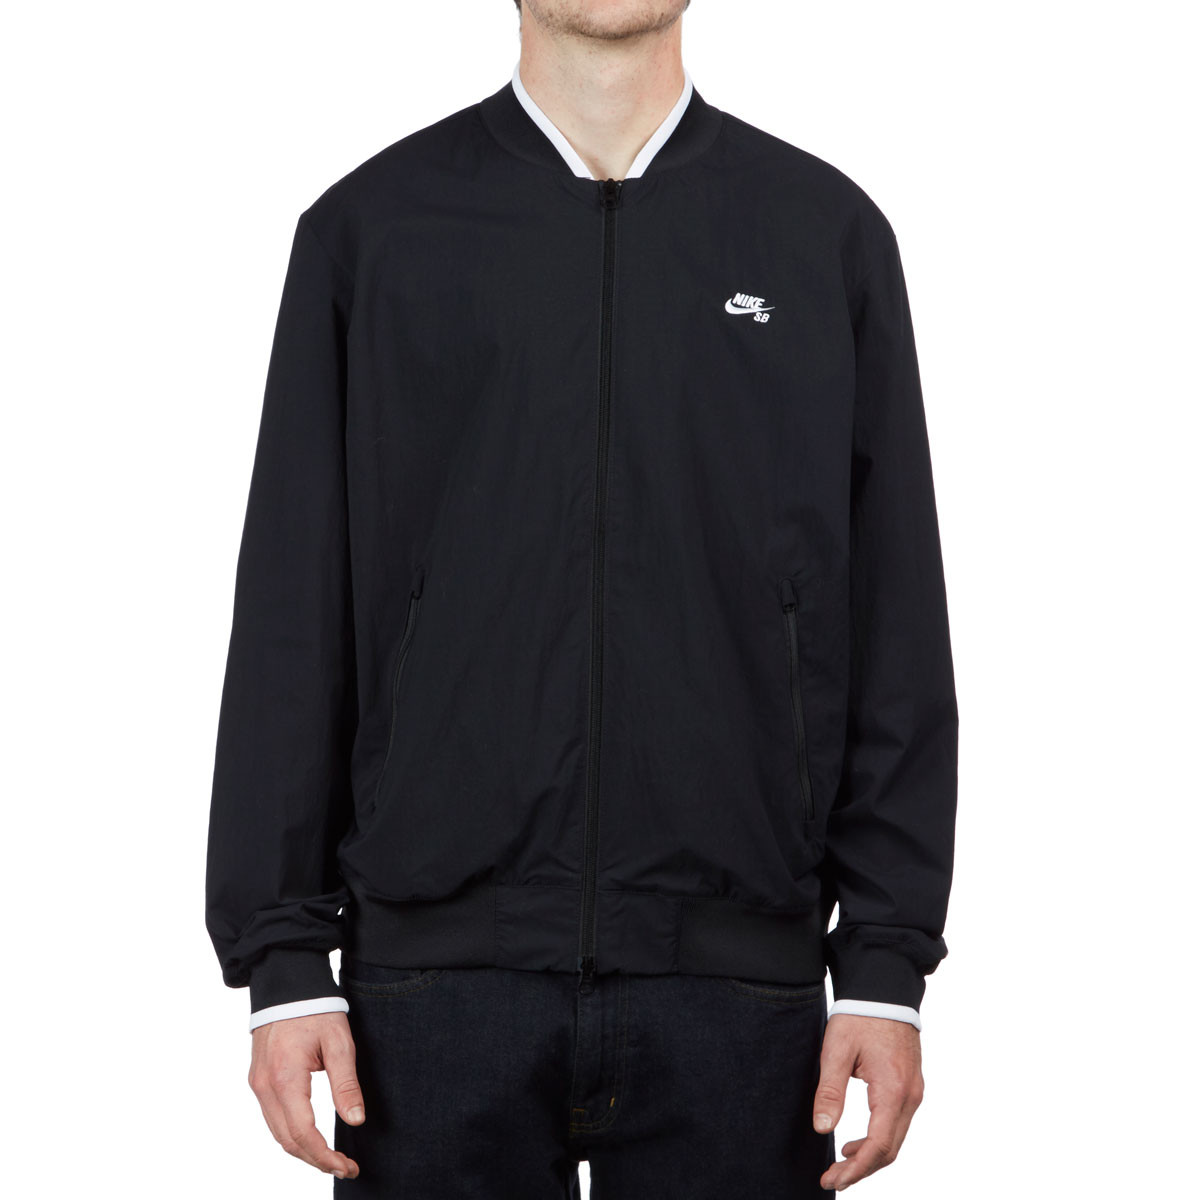 3753f288f82 Nike SB Icon Bomber Jacket - Black/Black/White